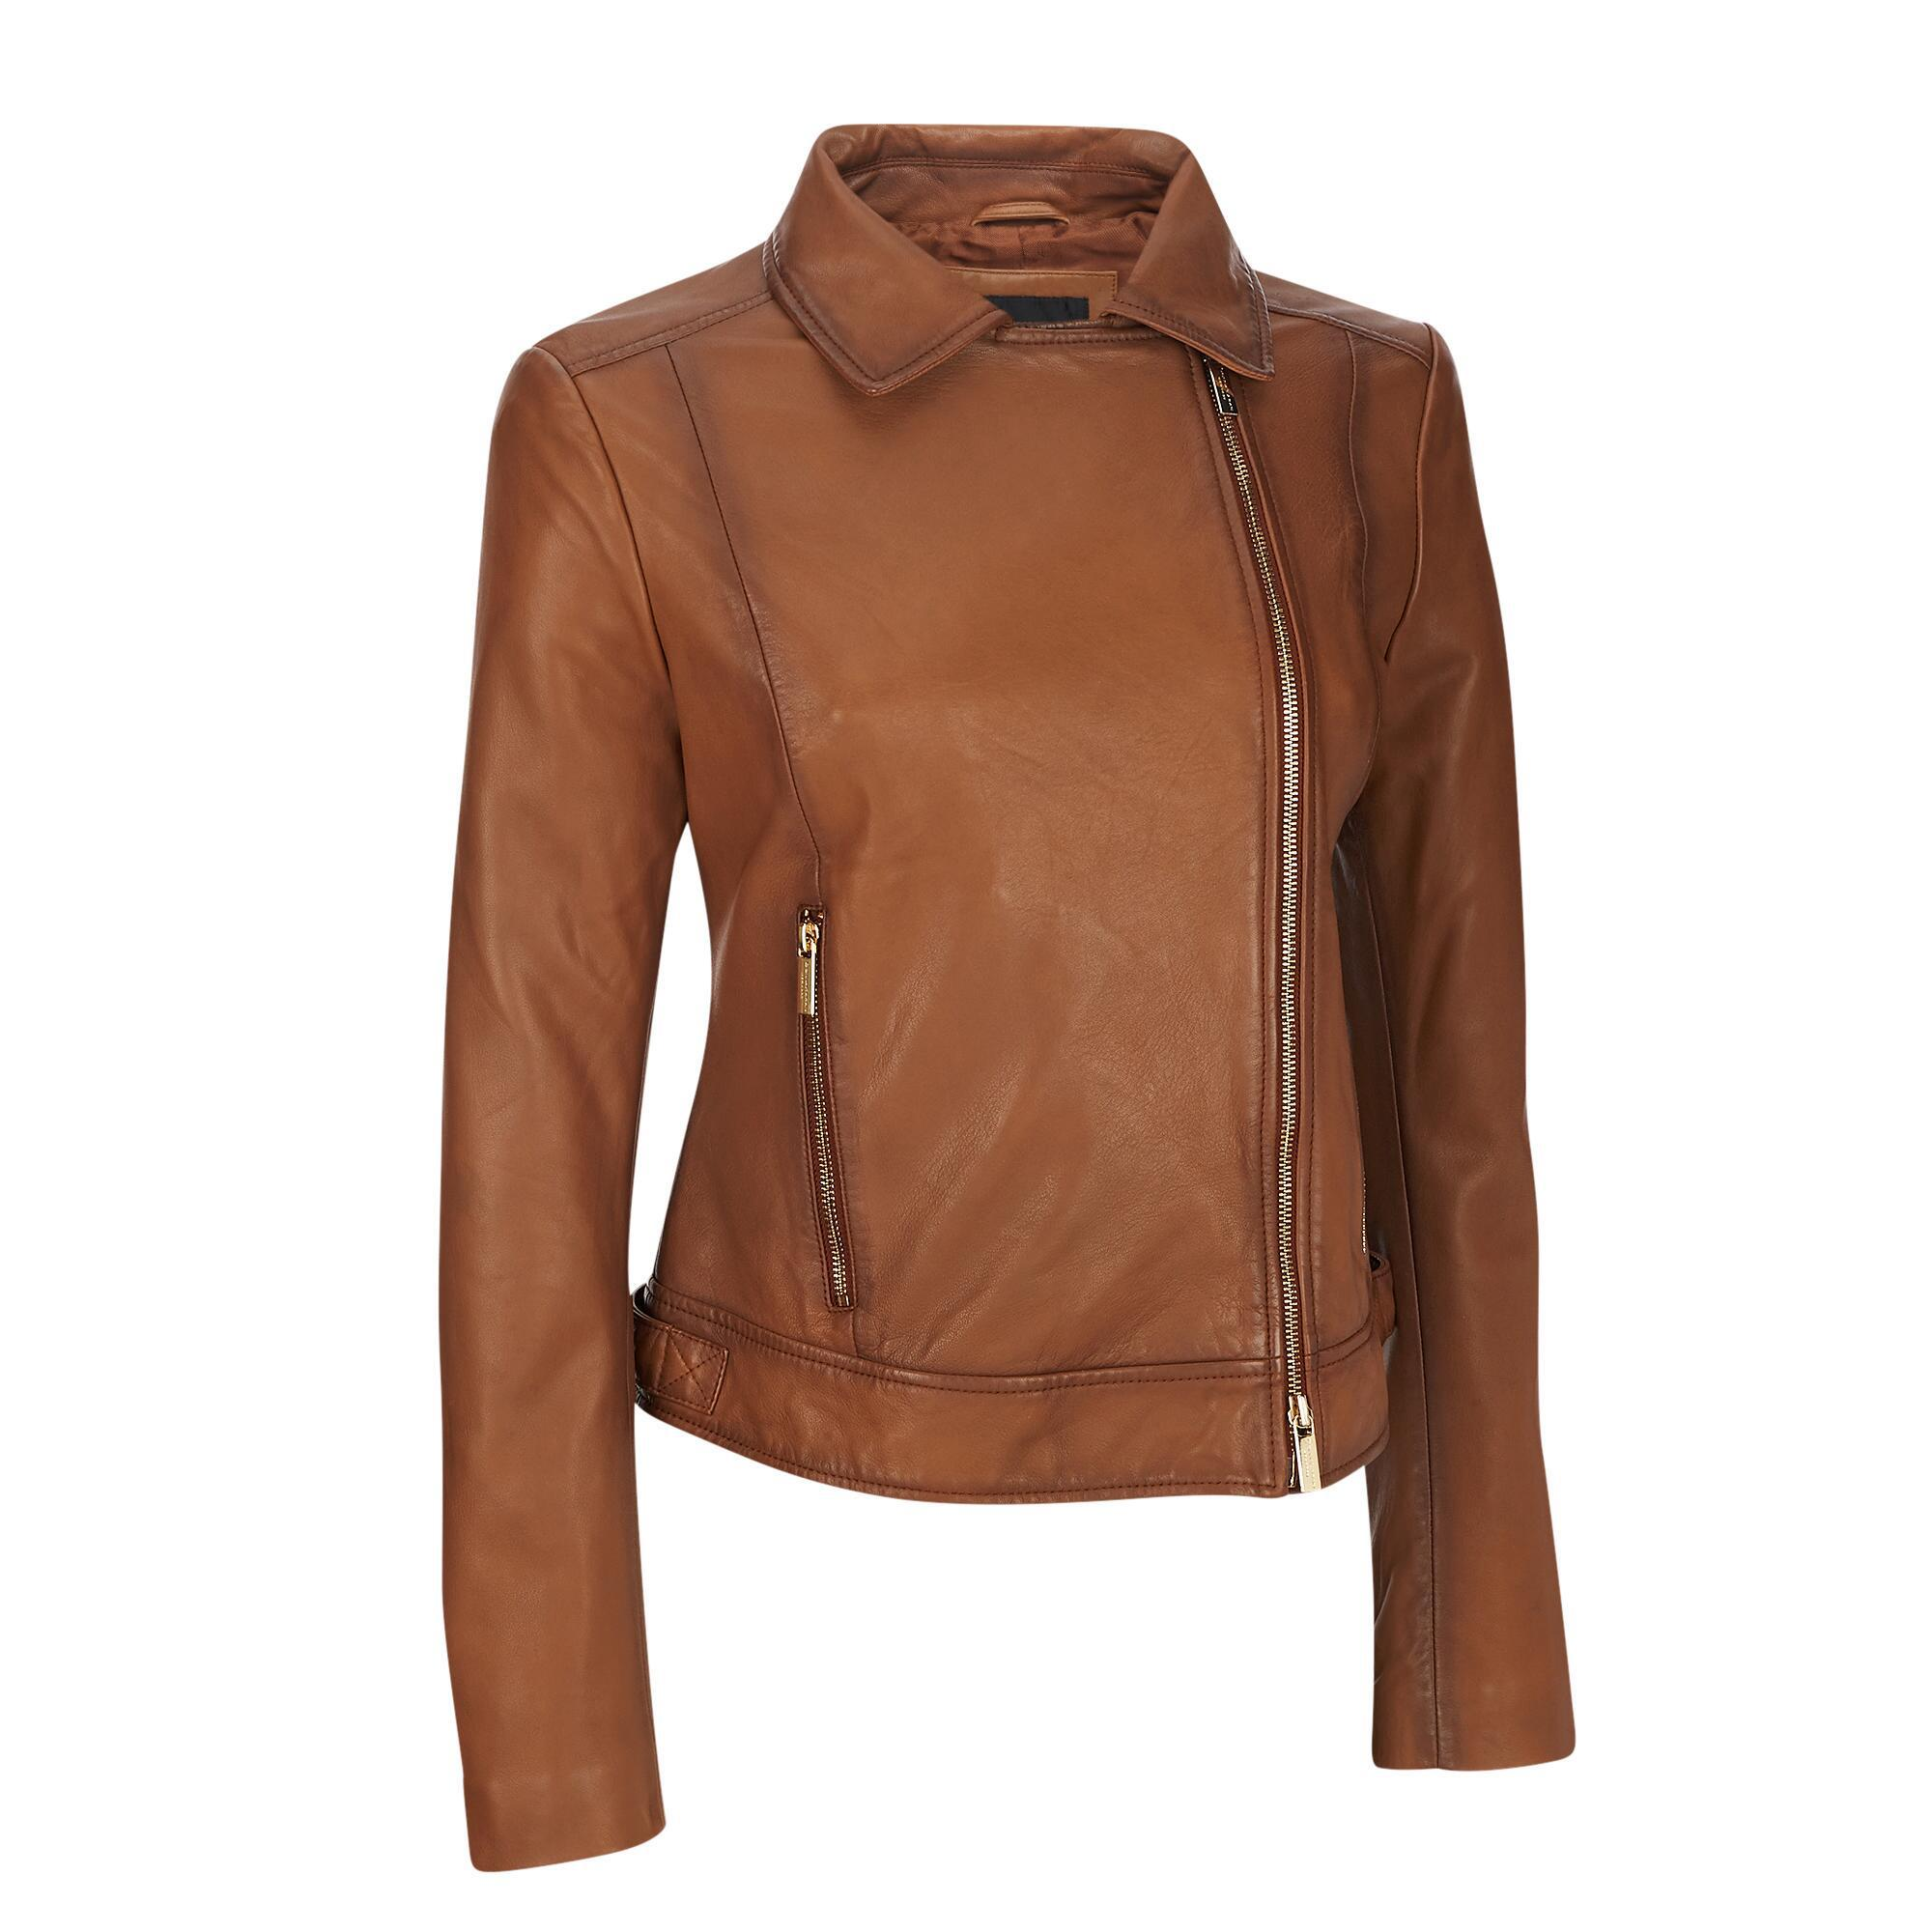 4baf397f8a1 Lyst - Wilsons Leather Designer Brand Asymmetrical Zip Genuine ...